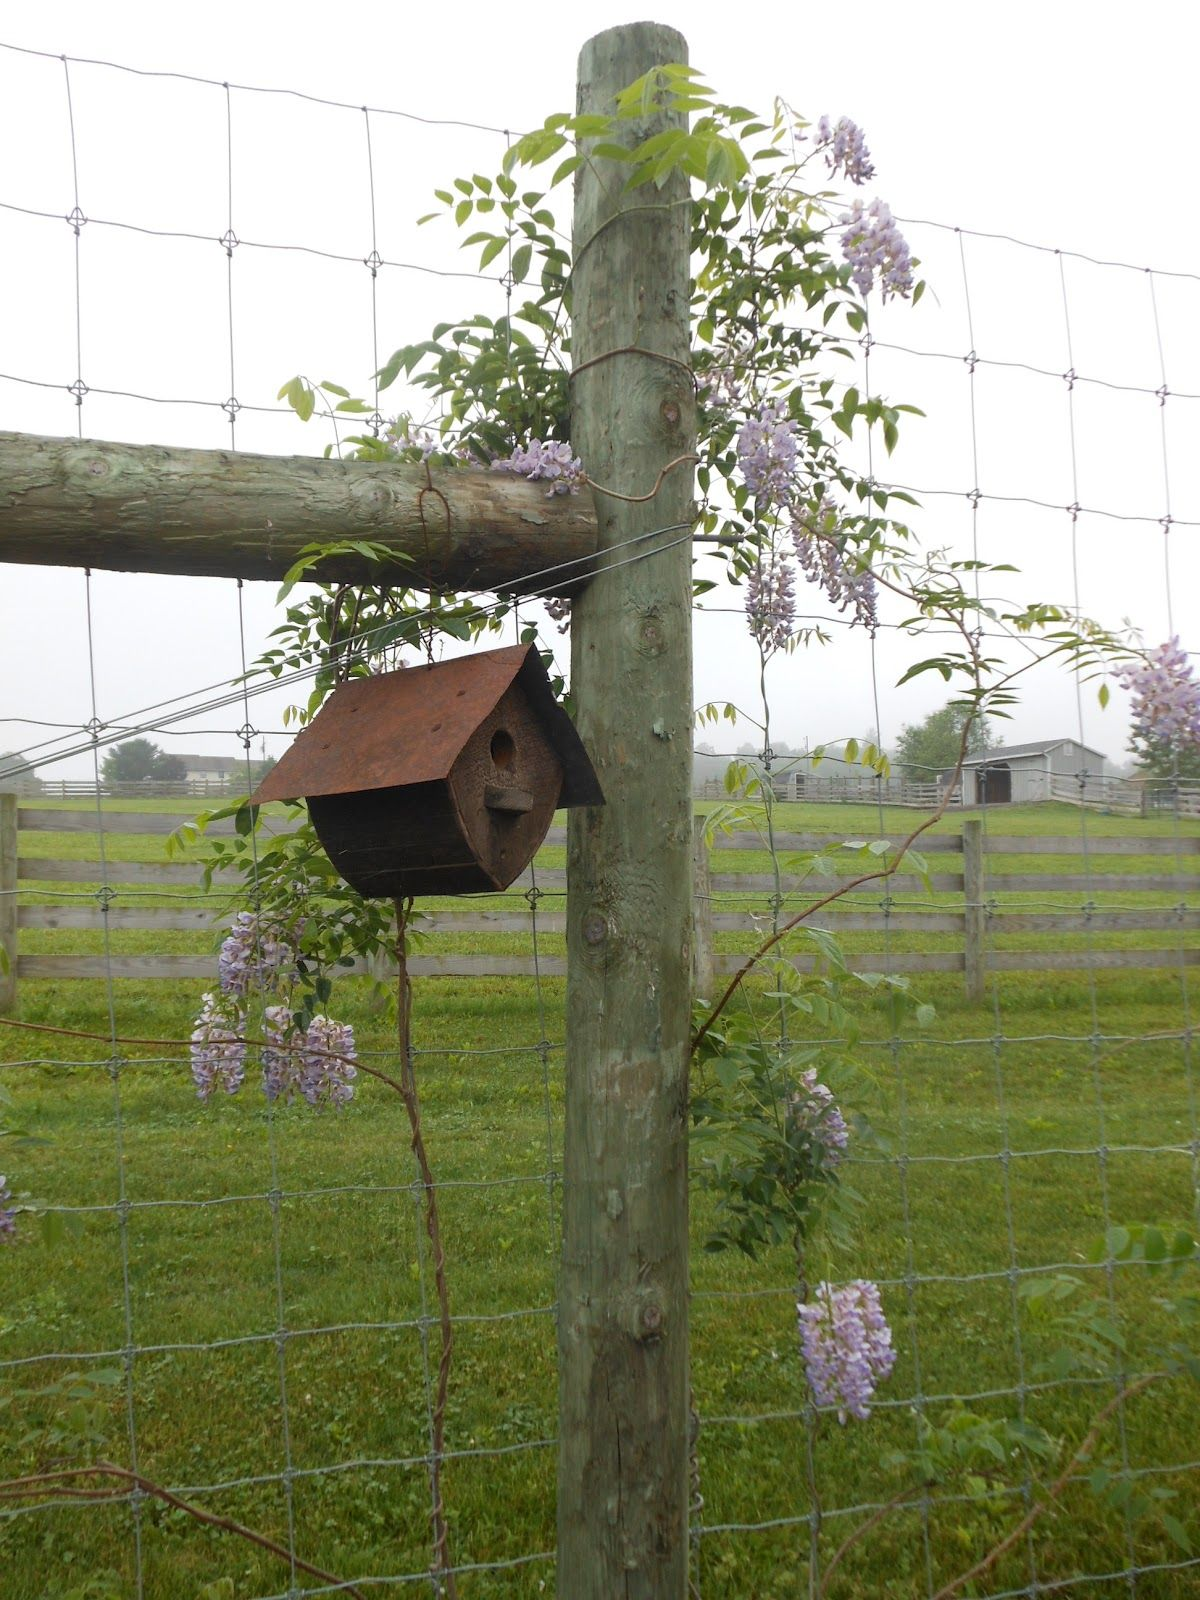 A very appropriate place for abird feeder bird house